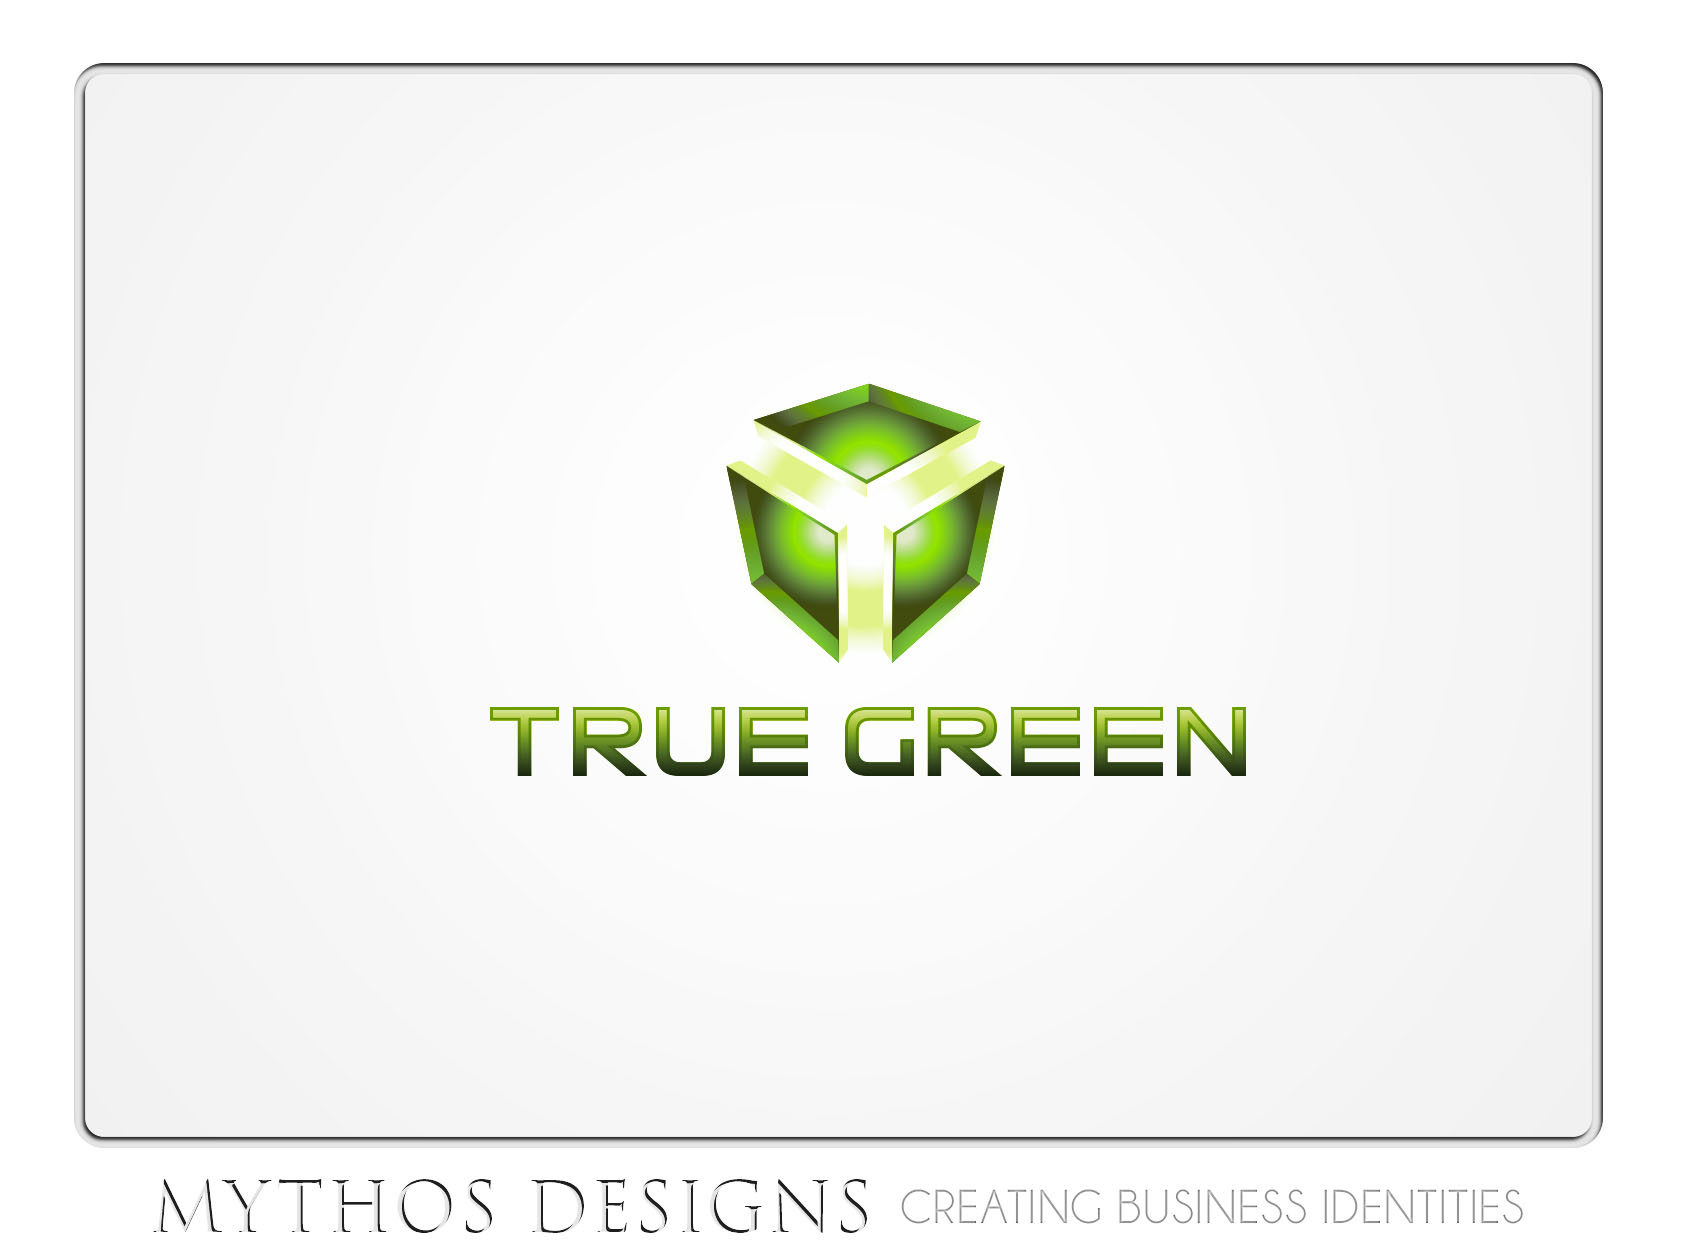 Logo Design by Mythos Designs - Entry No. 41 in the Logo Design Contest Fun Logo Design for TRUE GREEN.